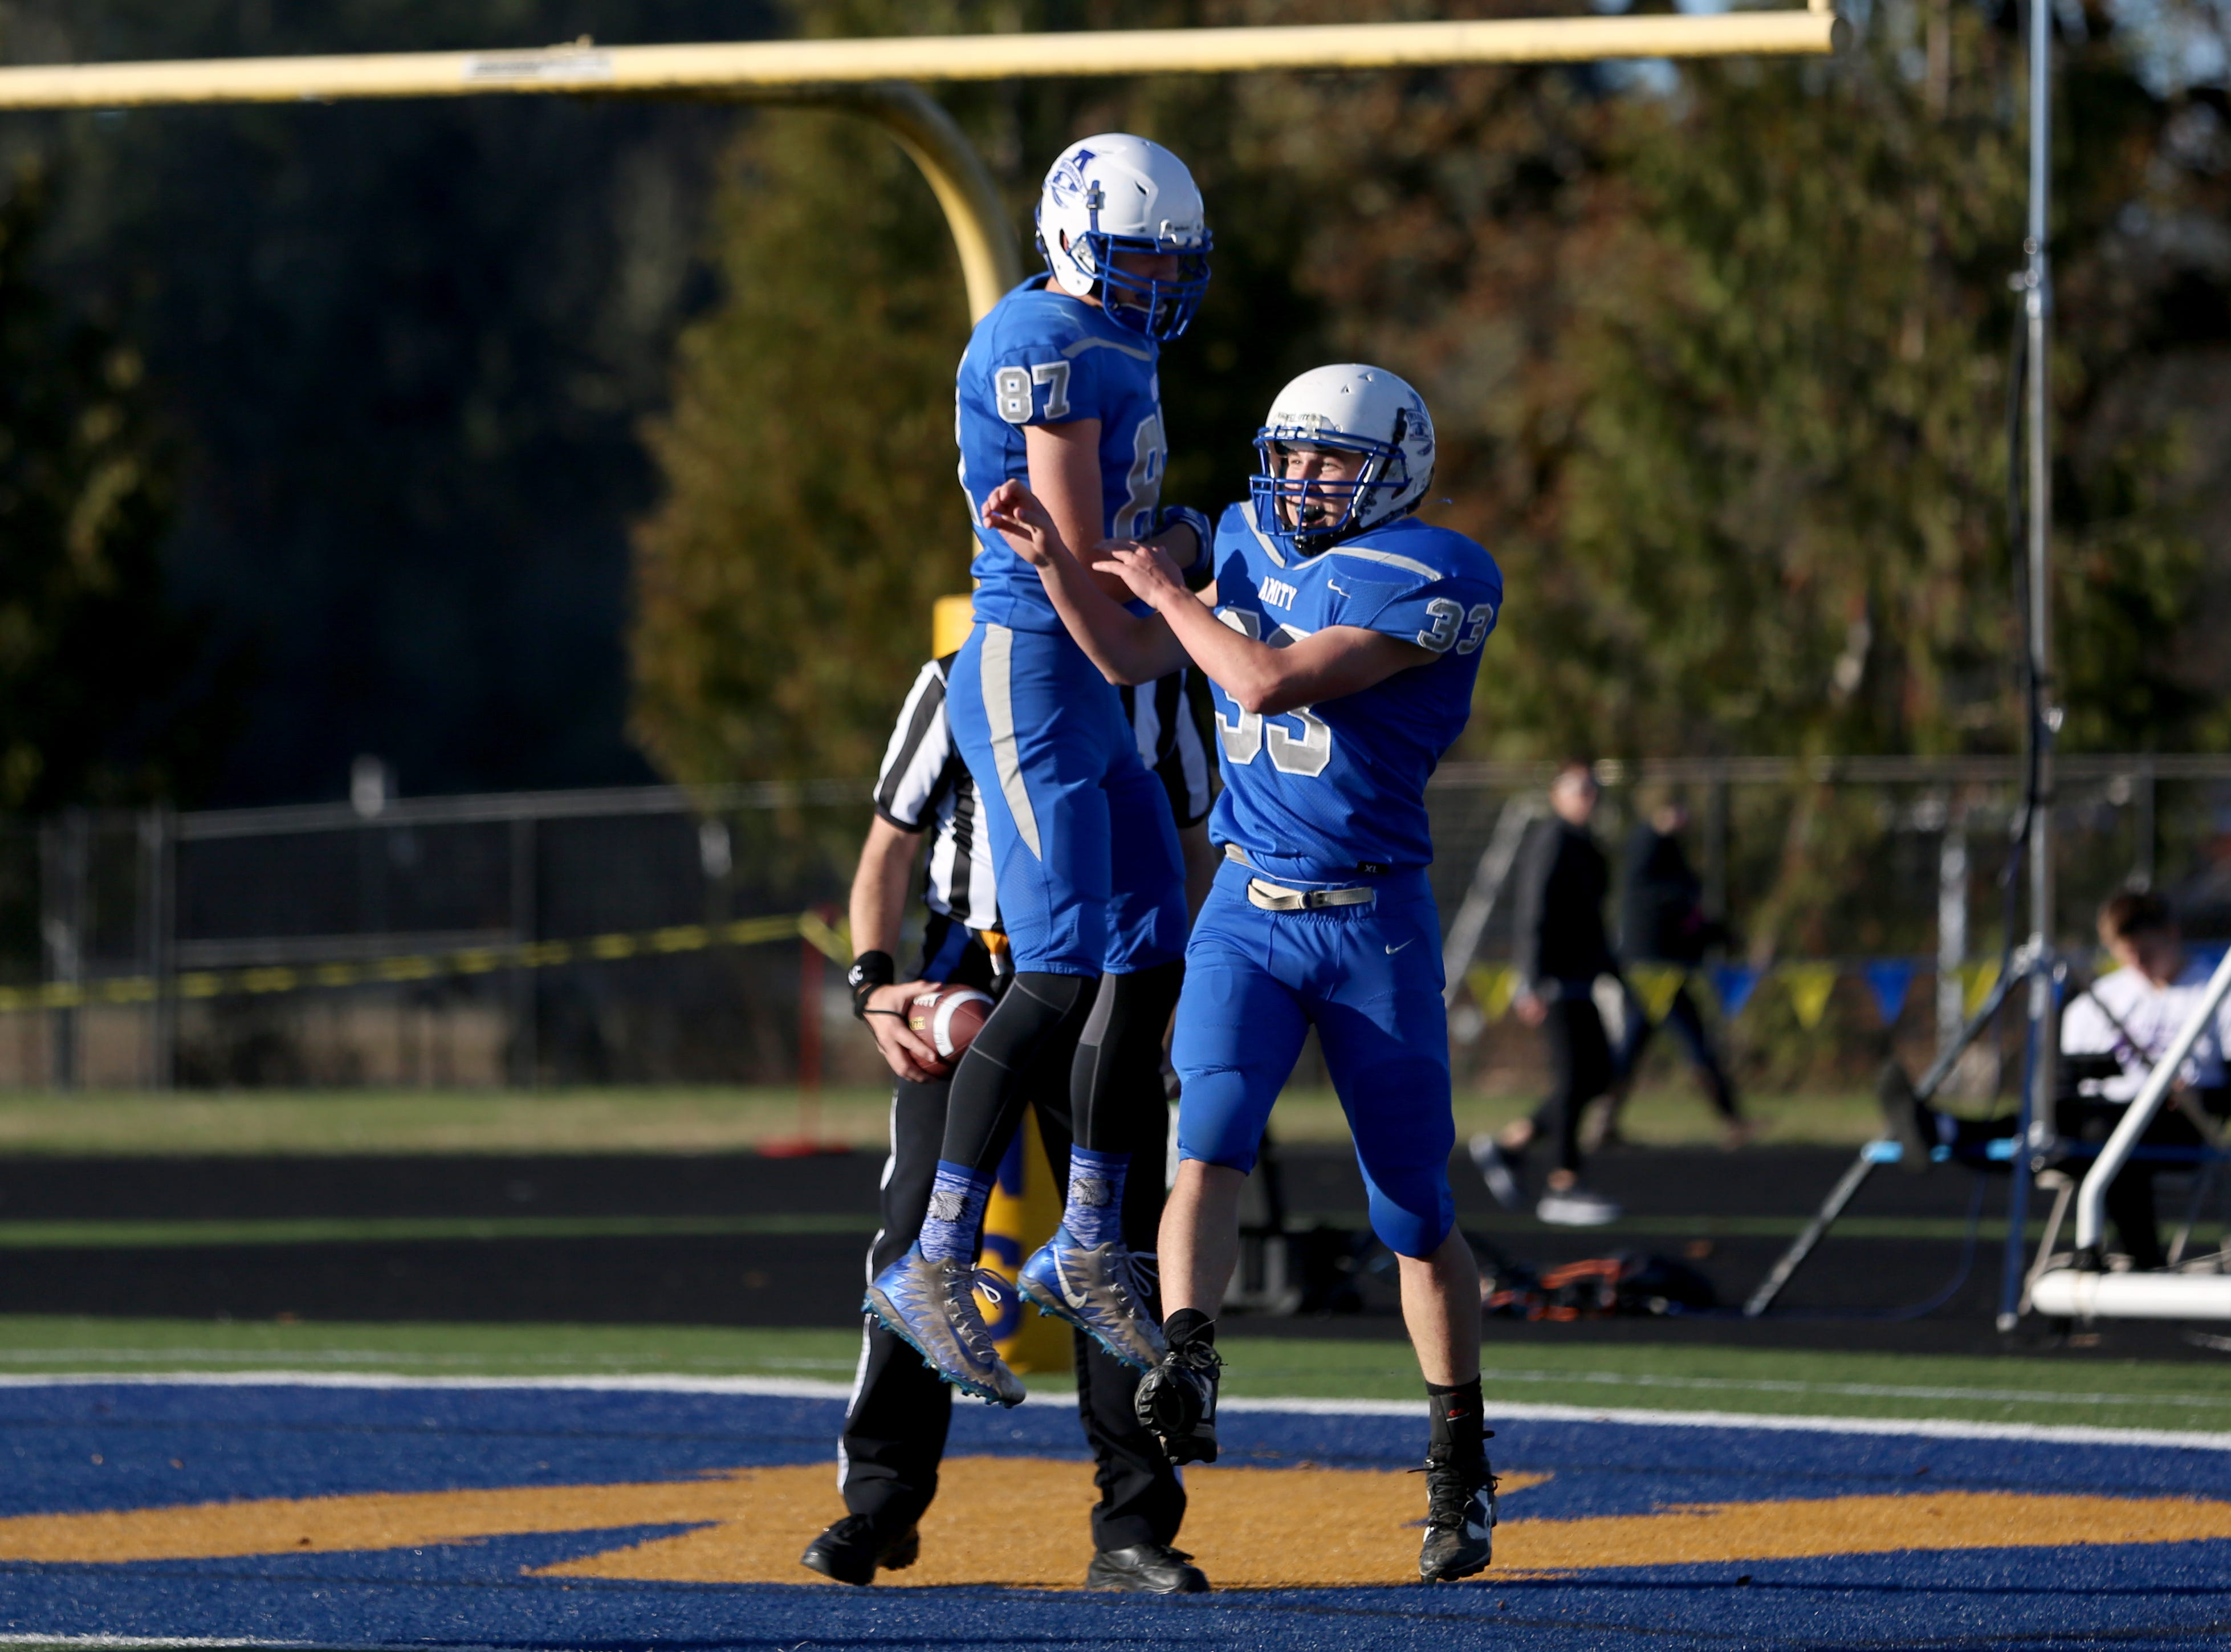 Amity's Josh Wart (87) and Jonathan Mather (33) celebrate after Mather's 72-yard touchdown during the OSAA 3A semifinal Amity vs Cascade Christian football game on Saturday, Nov. 17, 2018 in Cottage Grove.